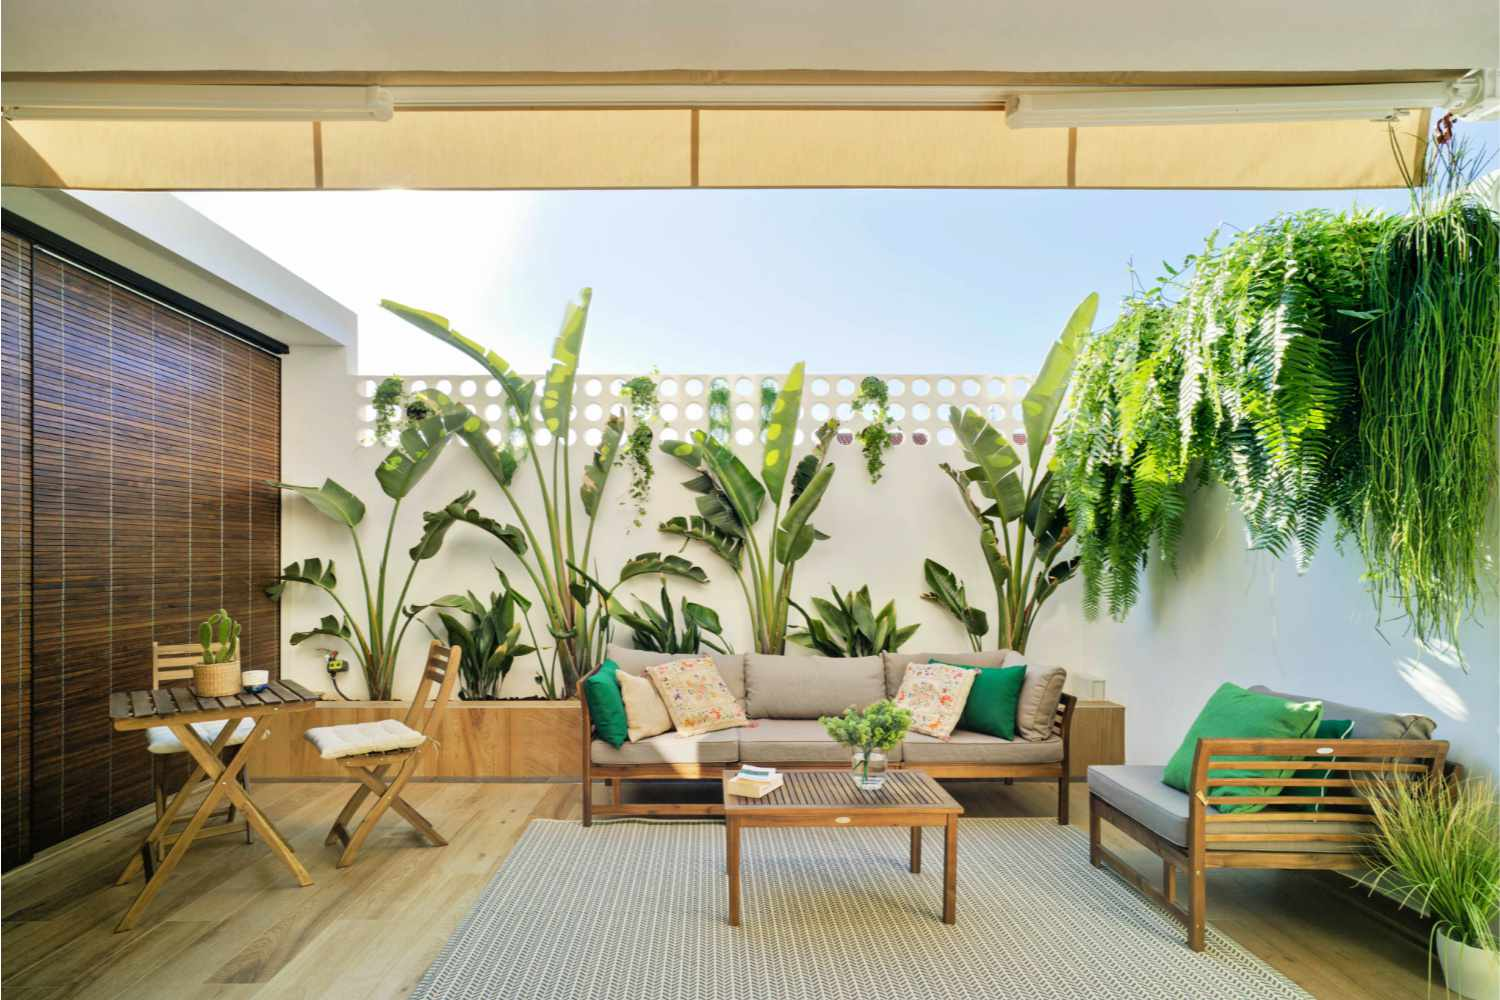 Giant foliage adorning wall in outdoor patio space.